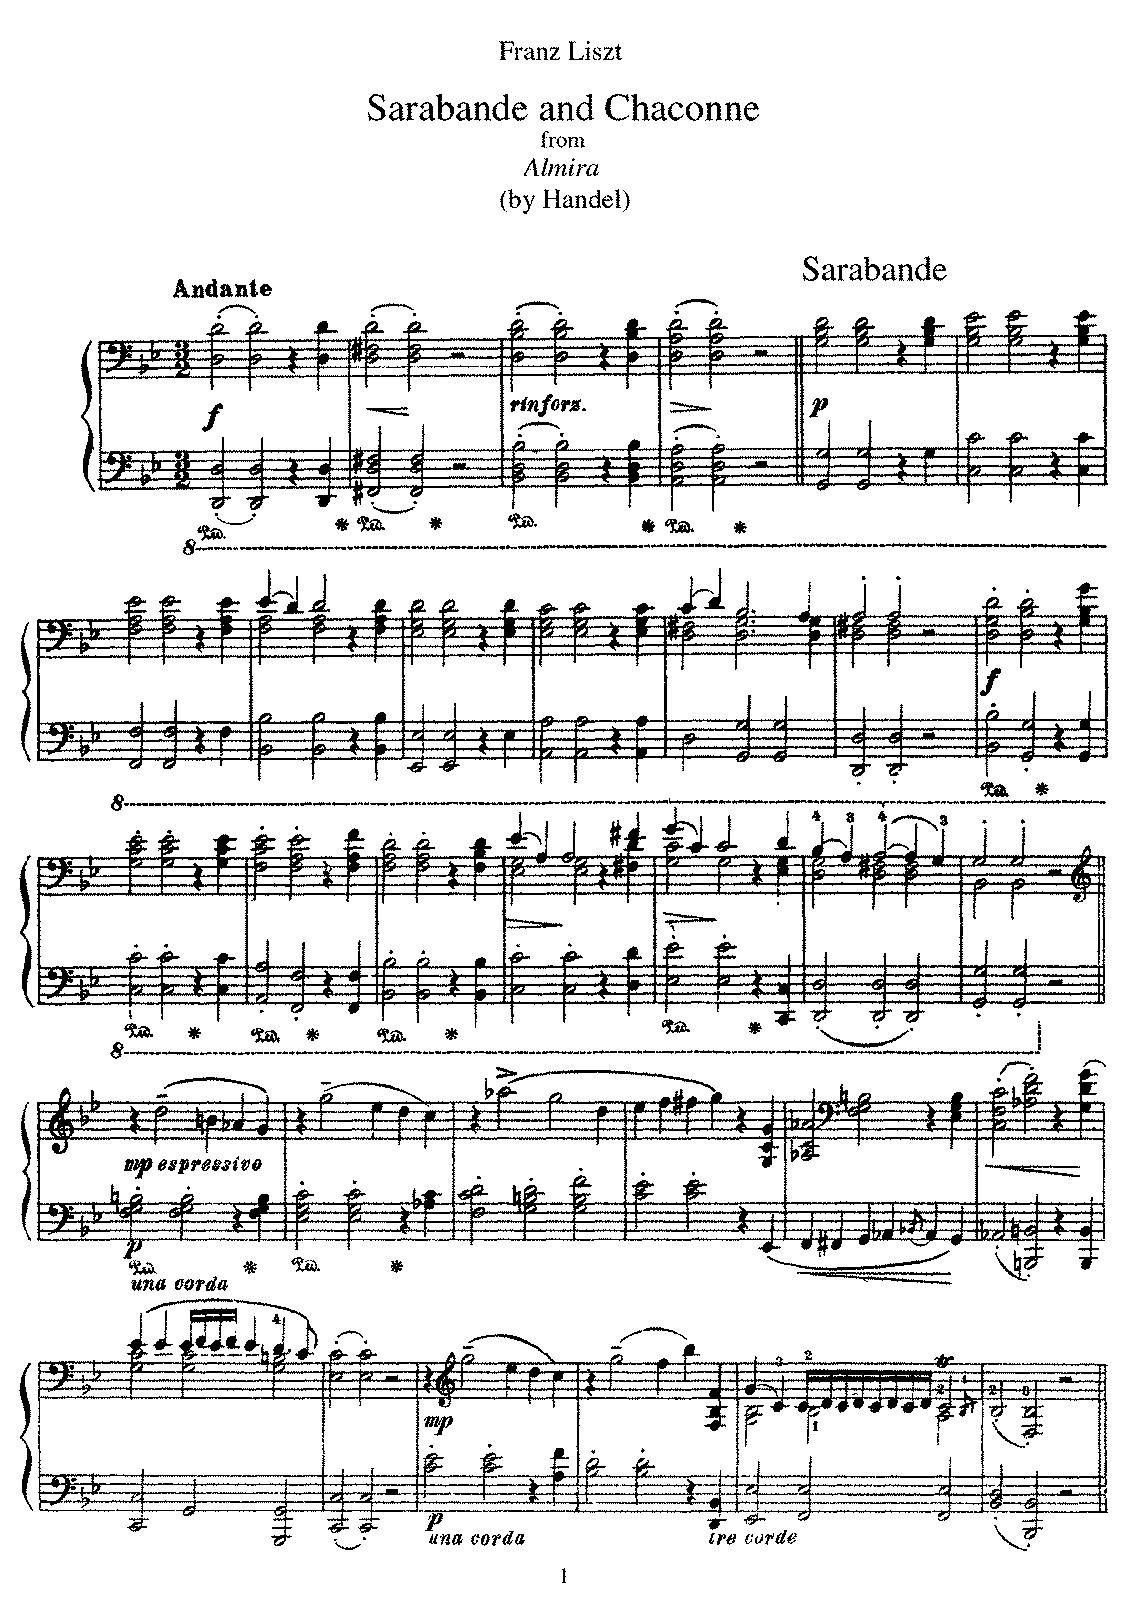 Liszt - S181 Sarabande and Chaconne from Almira by Handel.pdf